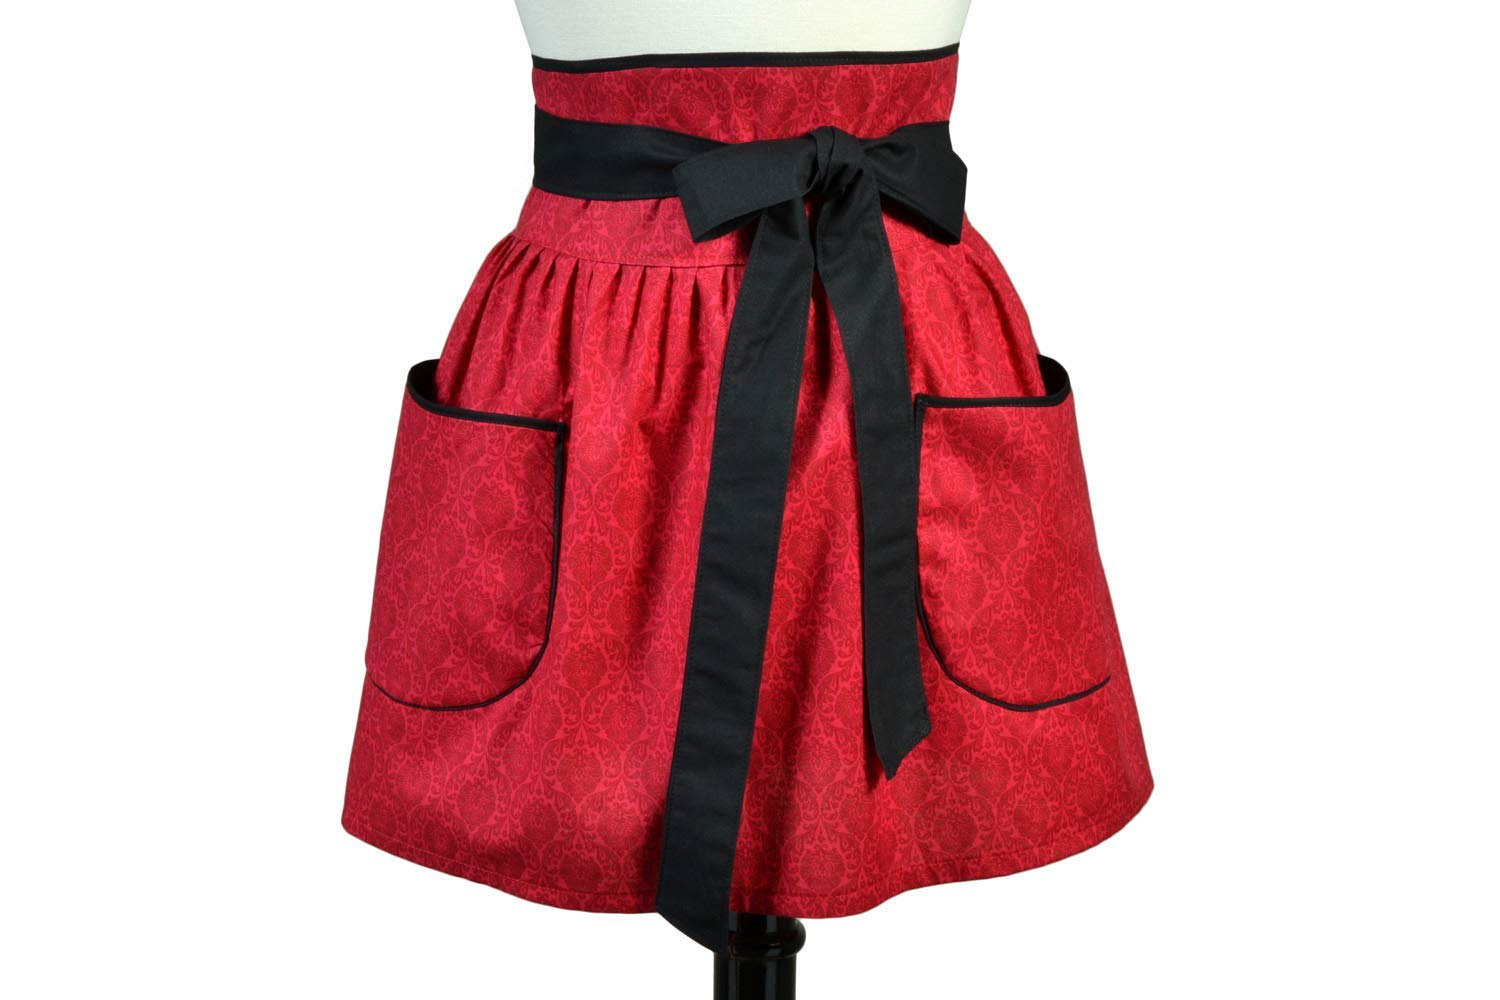 Womens Flirty Retro Waist Apron in Obi Design - Red Damask and Black Trim - Two Large Lined Pockets